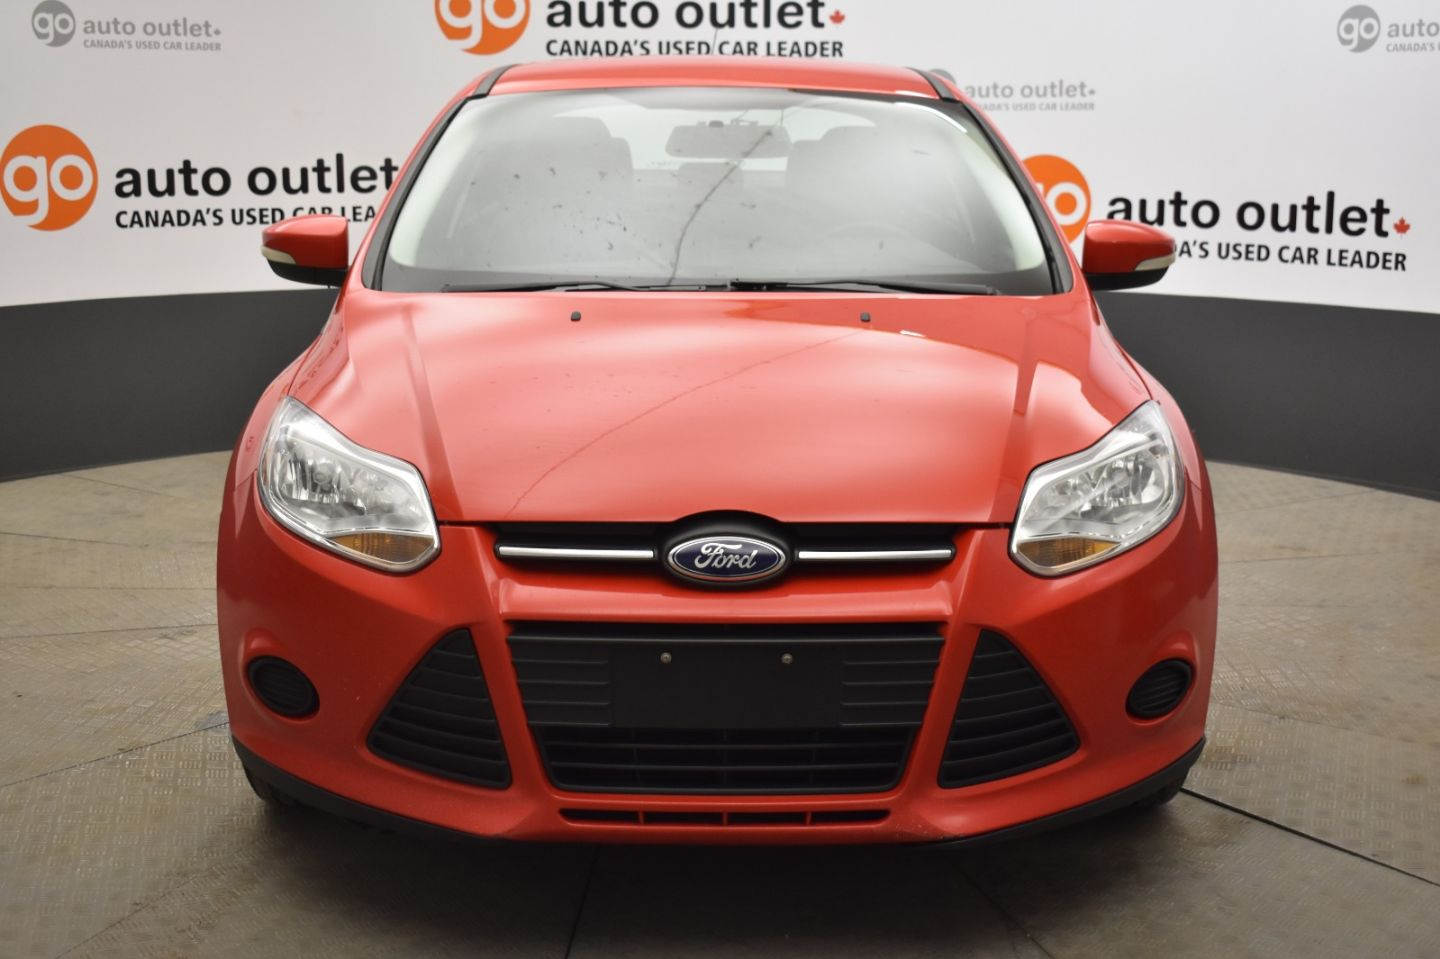 2013 Ford Focus SE for sale in Leduc, Alberta